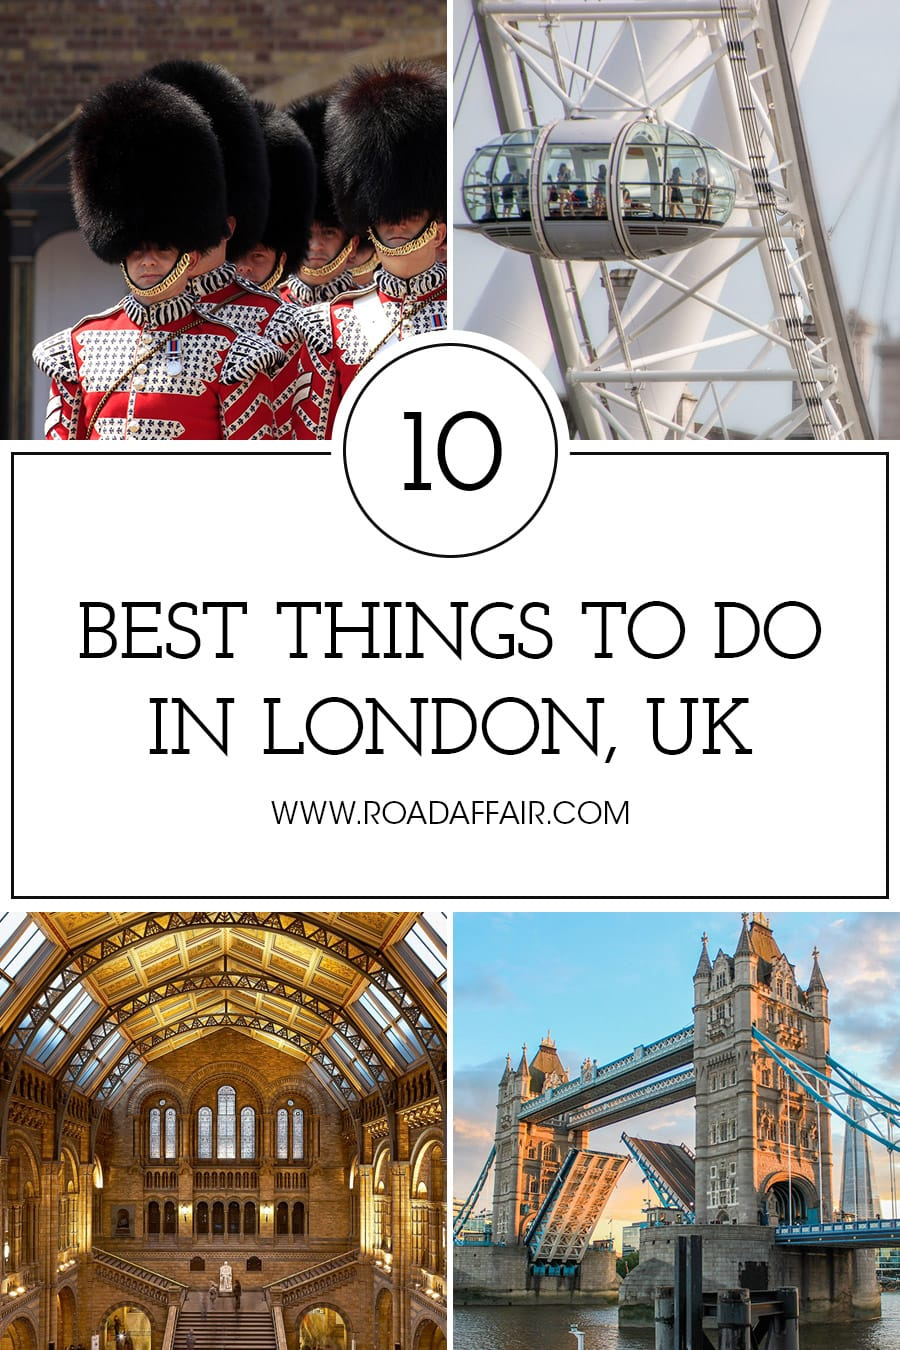 Discover the best things to do in London.